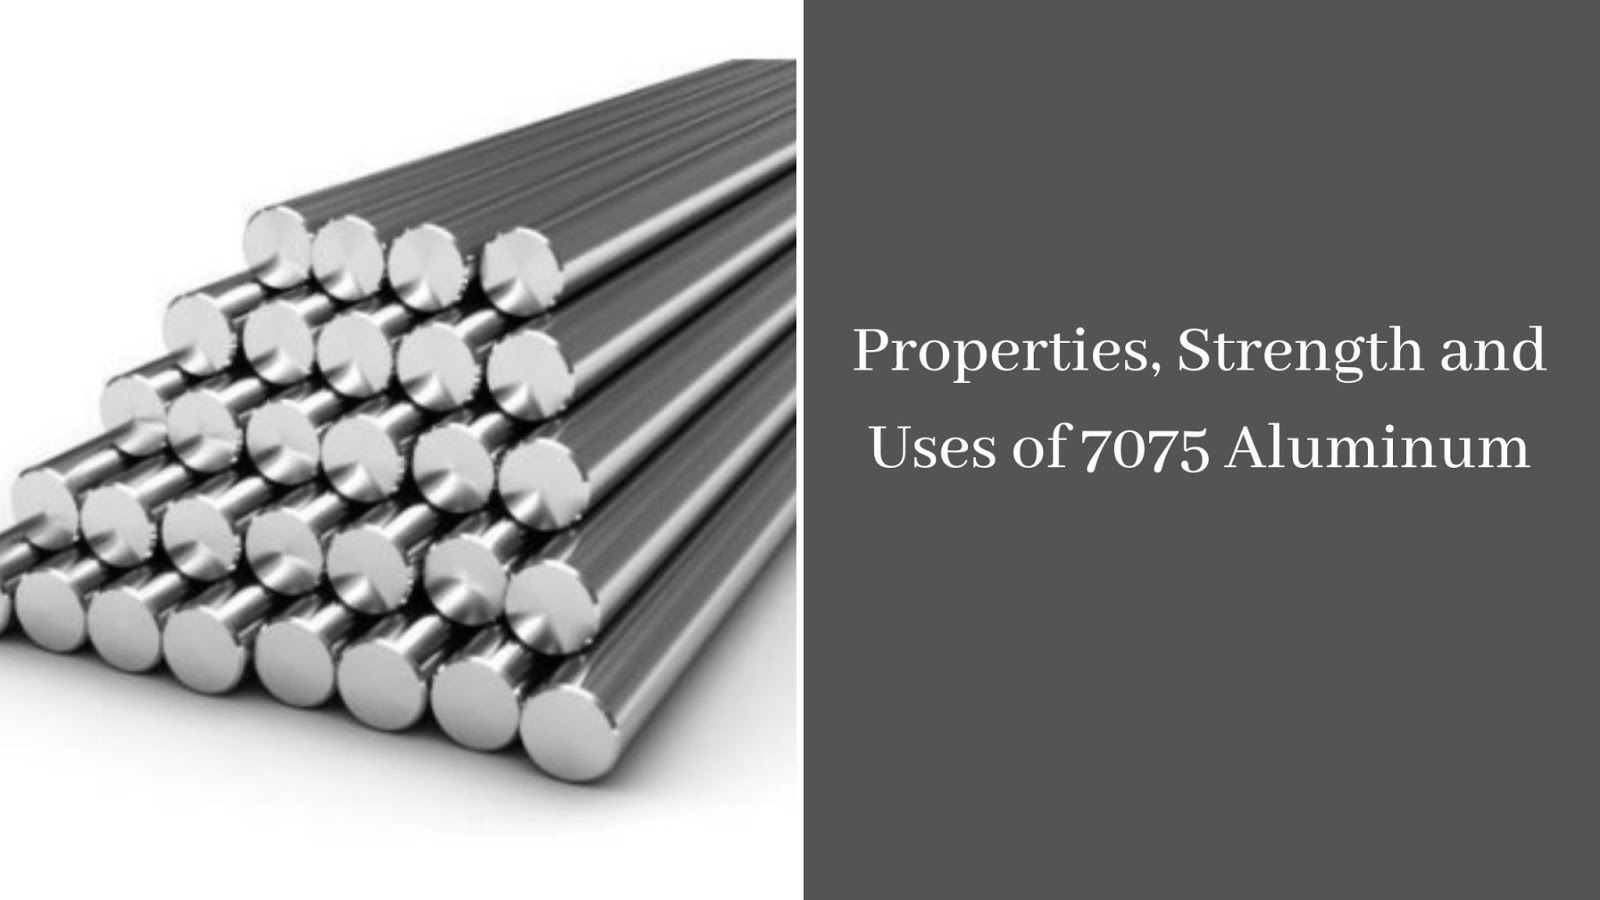 Properties, Strength and Uses of 7075 Aluminum